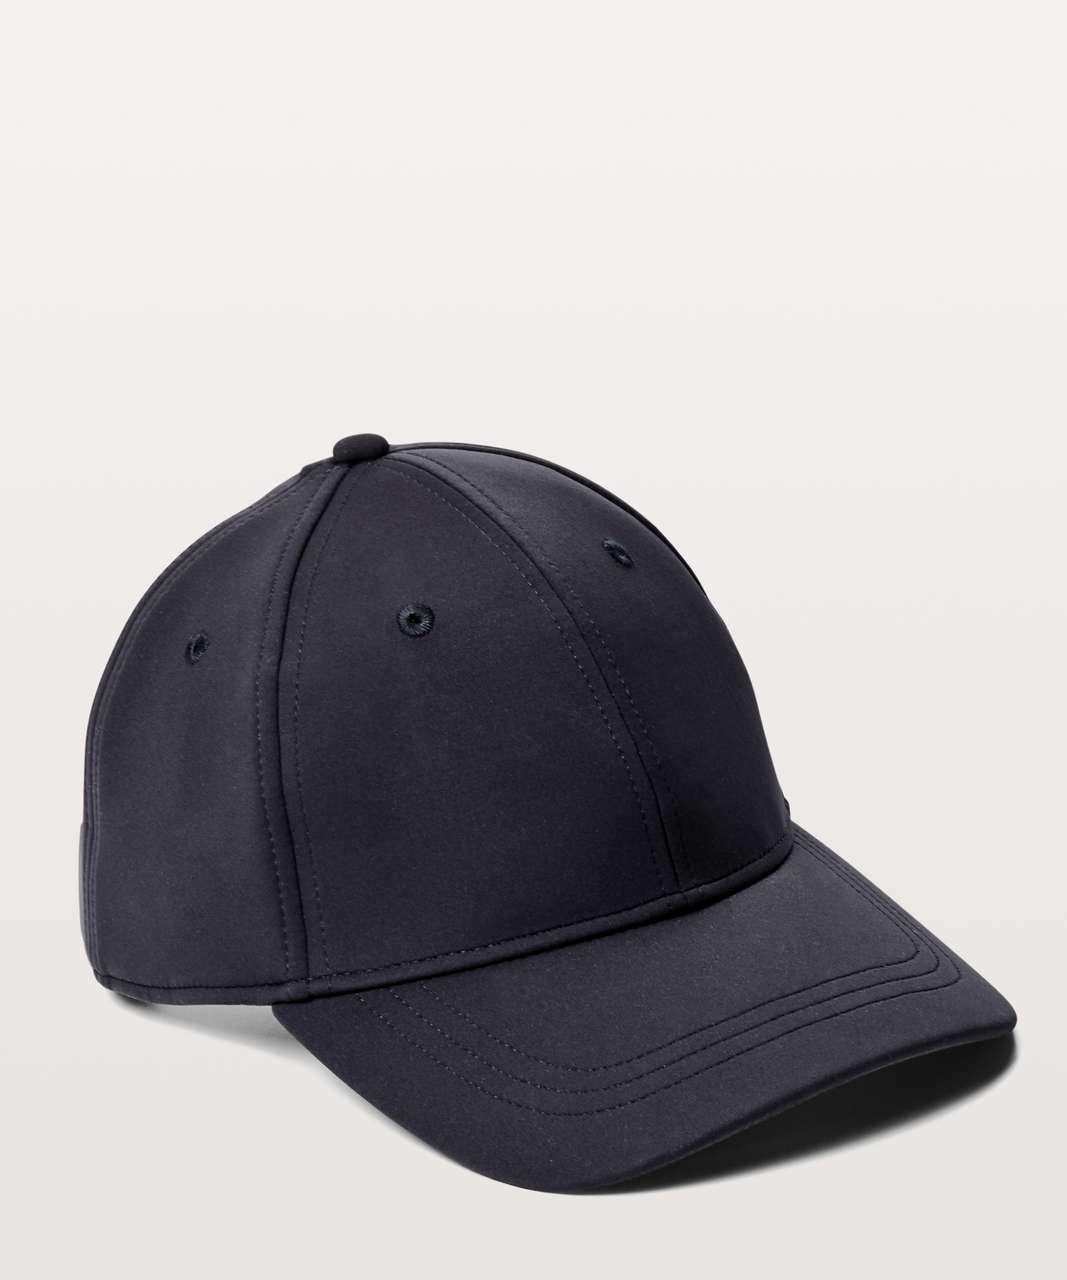 Lululemon Baller Hat - Midnight Navy